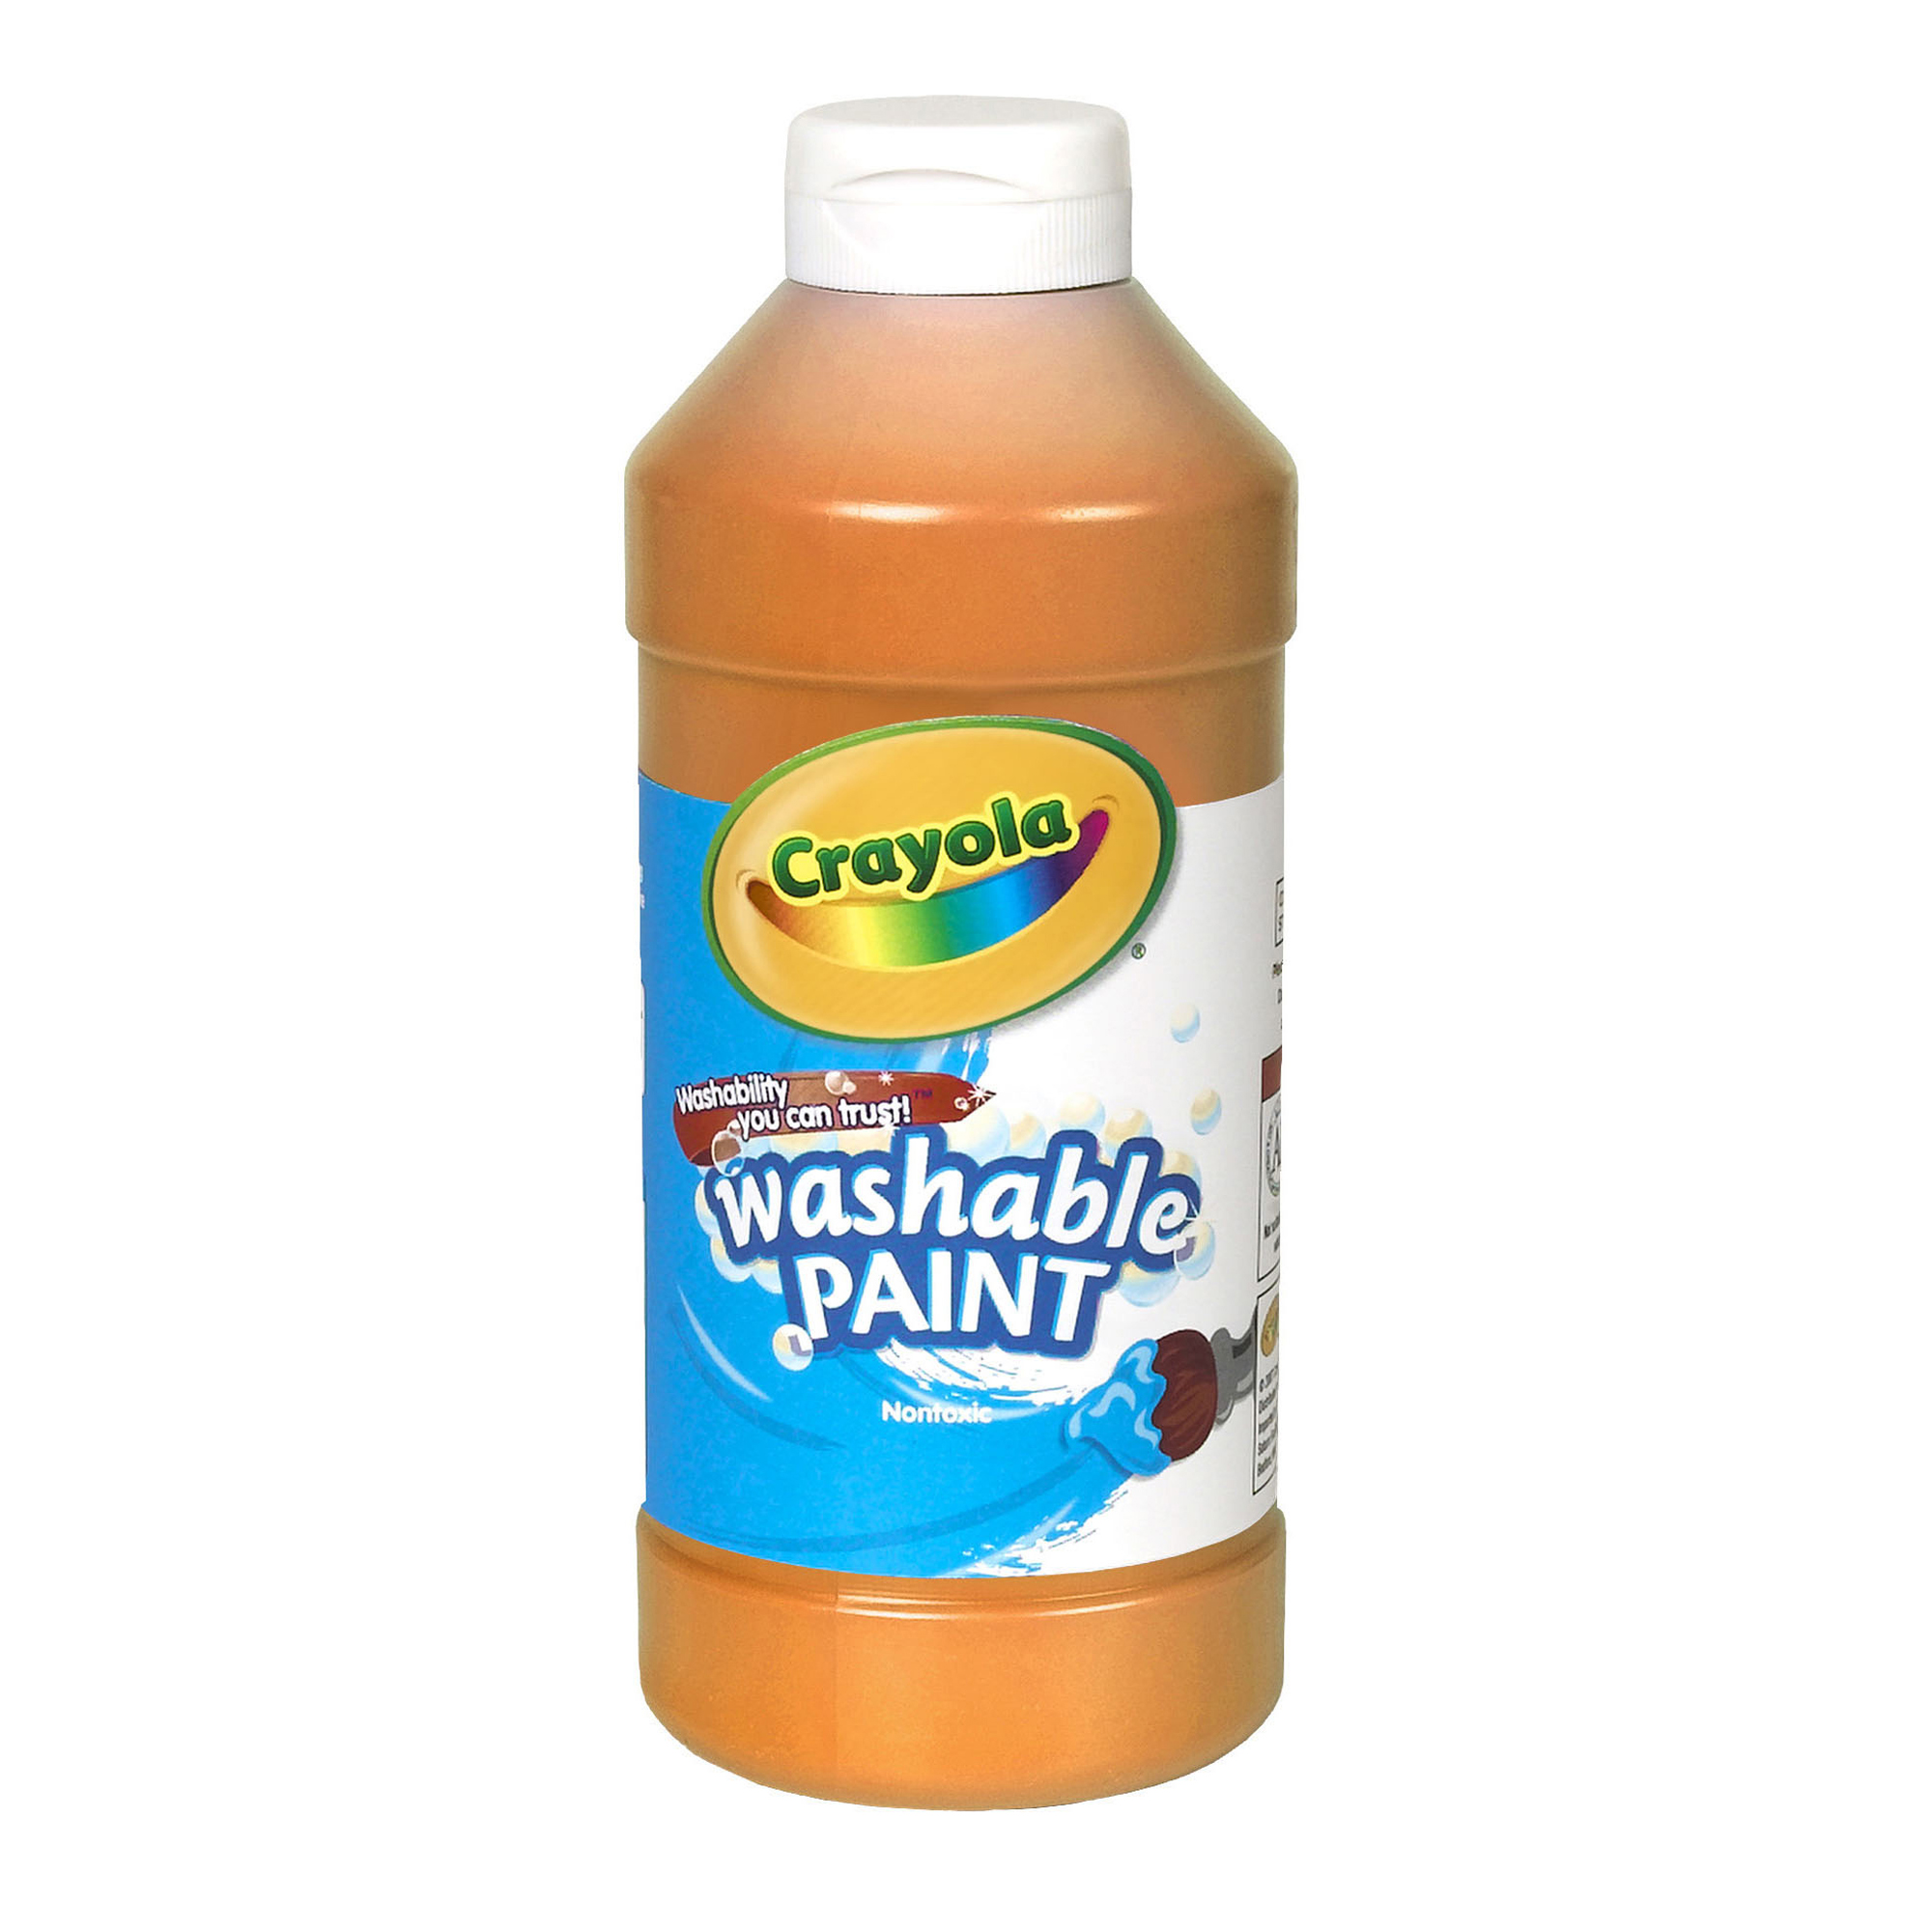 Crayola® Washable Paint, Orange, 16 oz., Set of 6 bottles